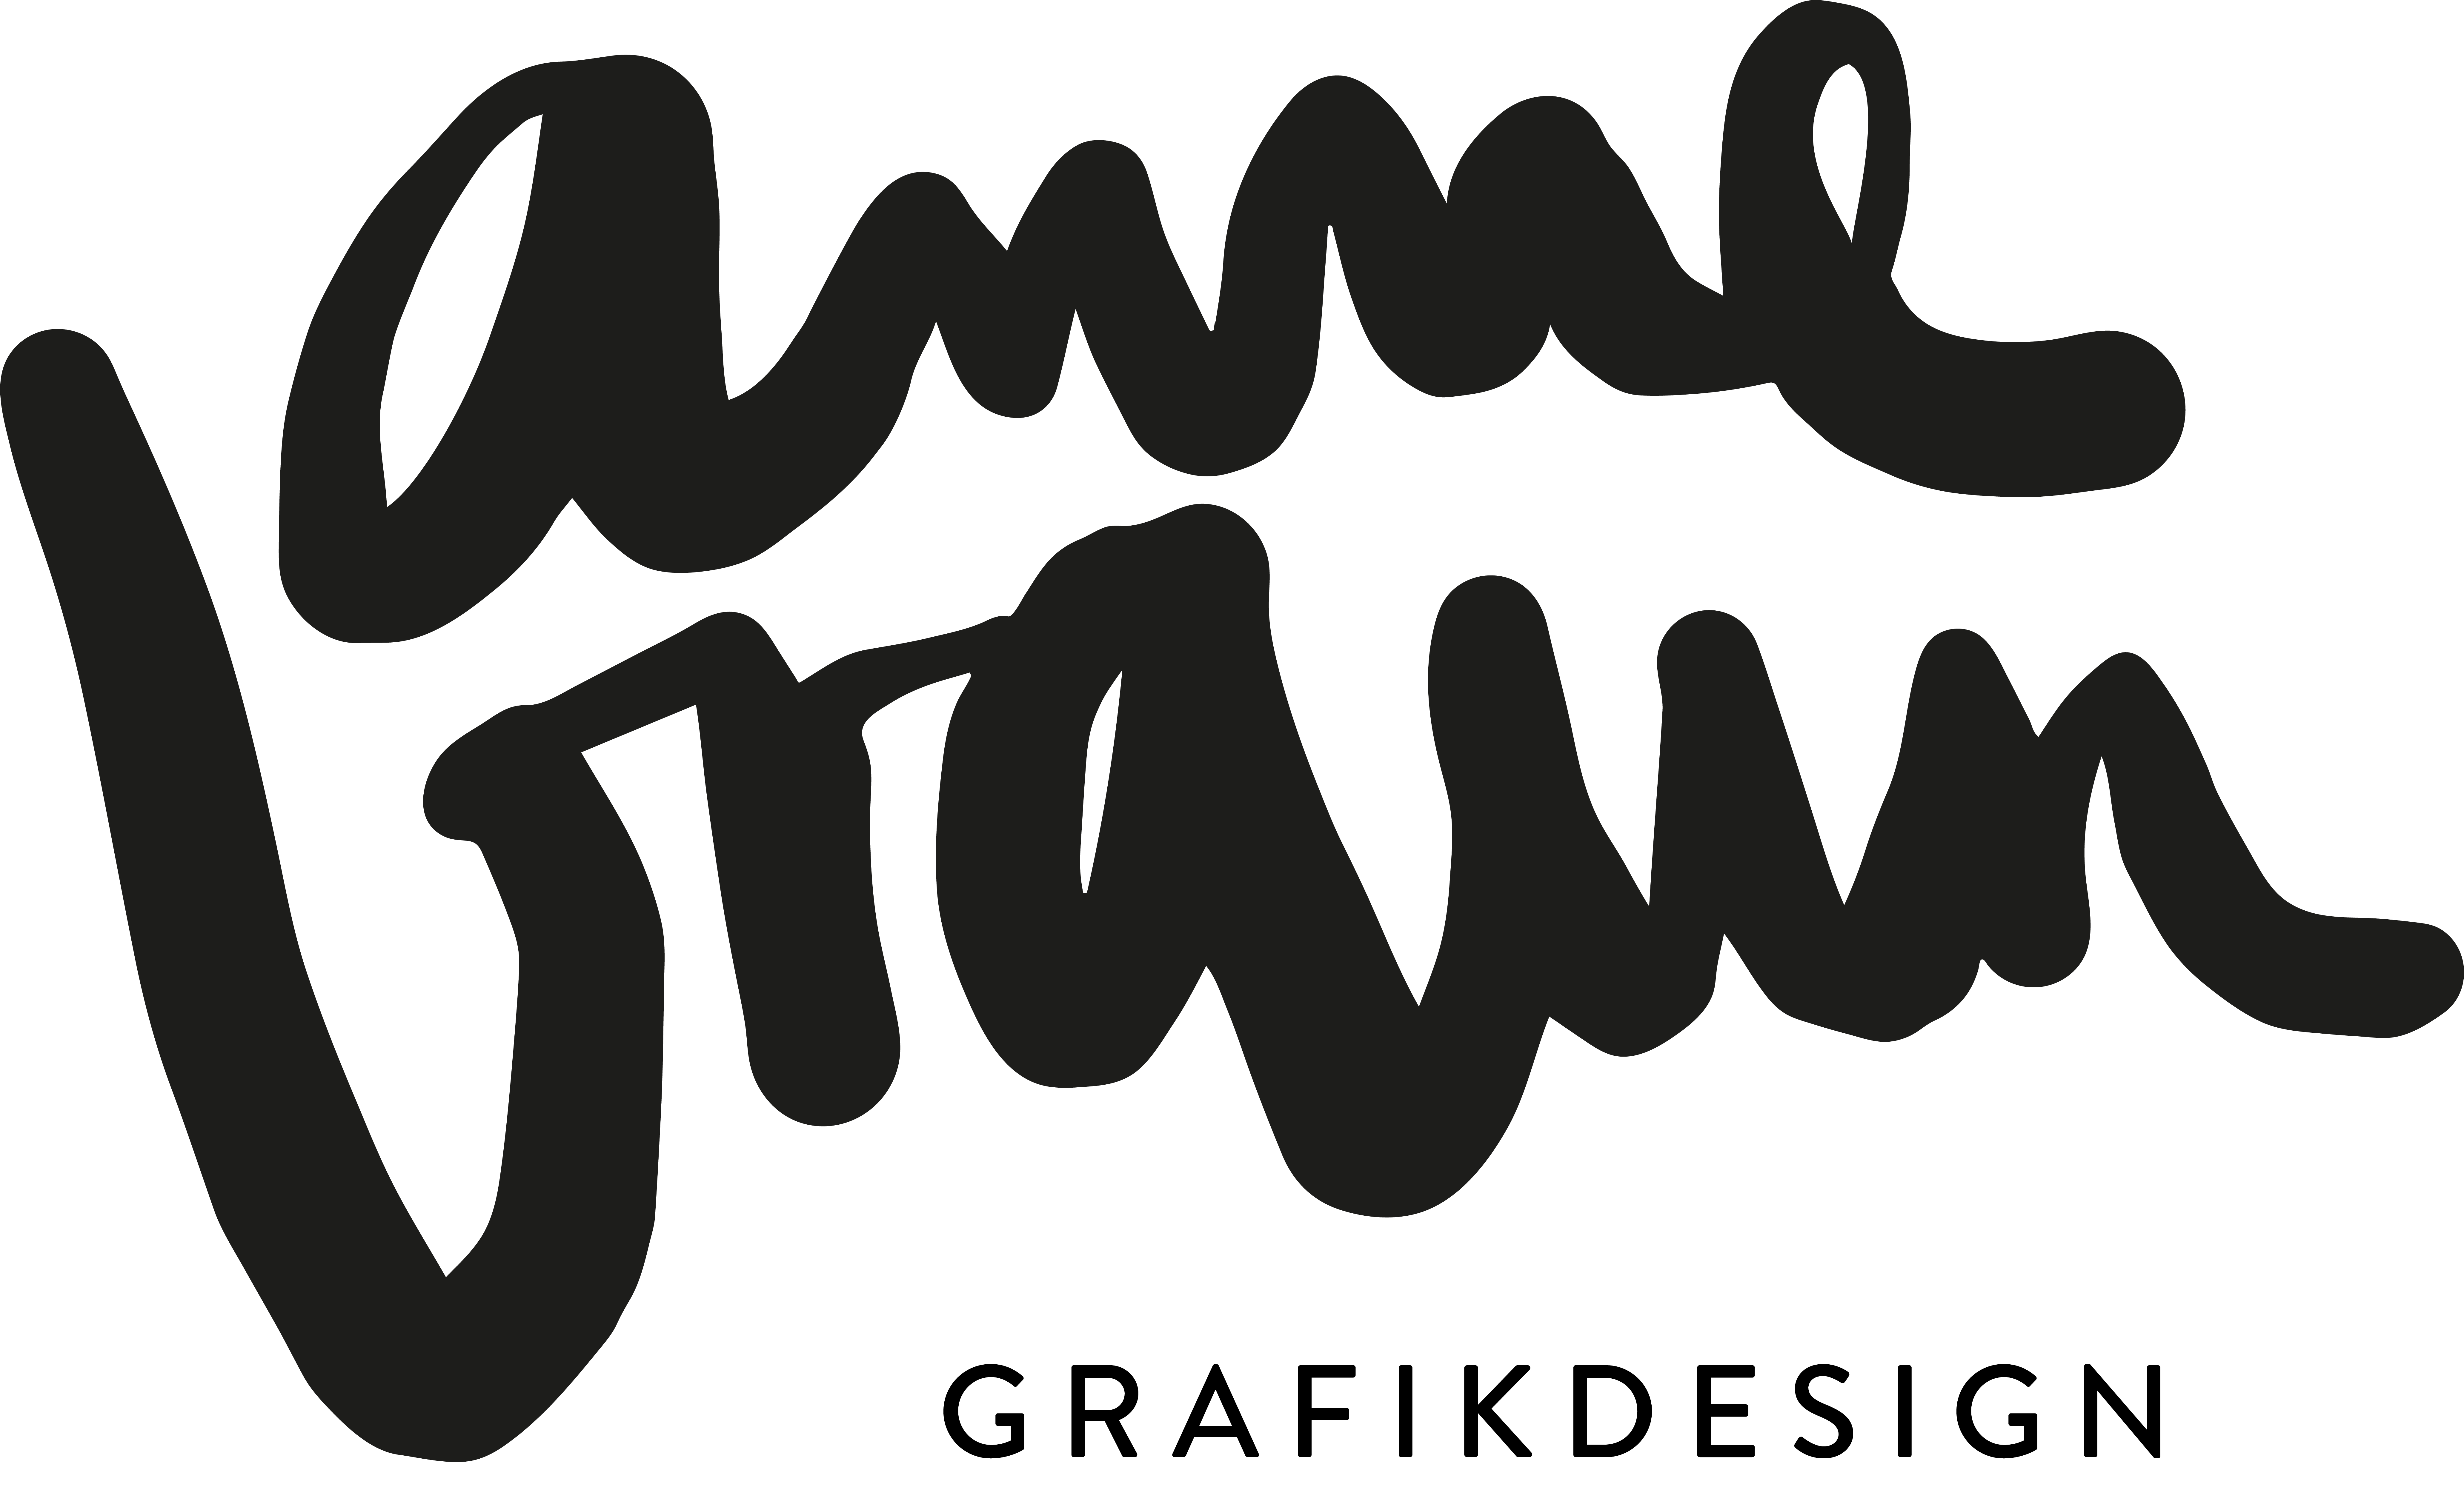 Logo Anne Braun Grafikdesign